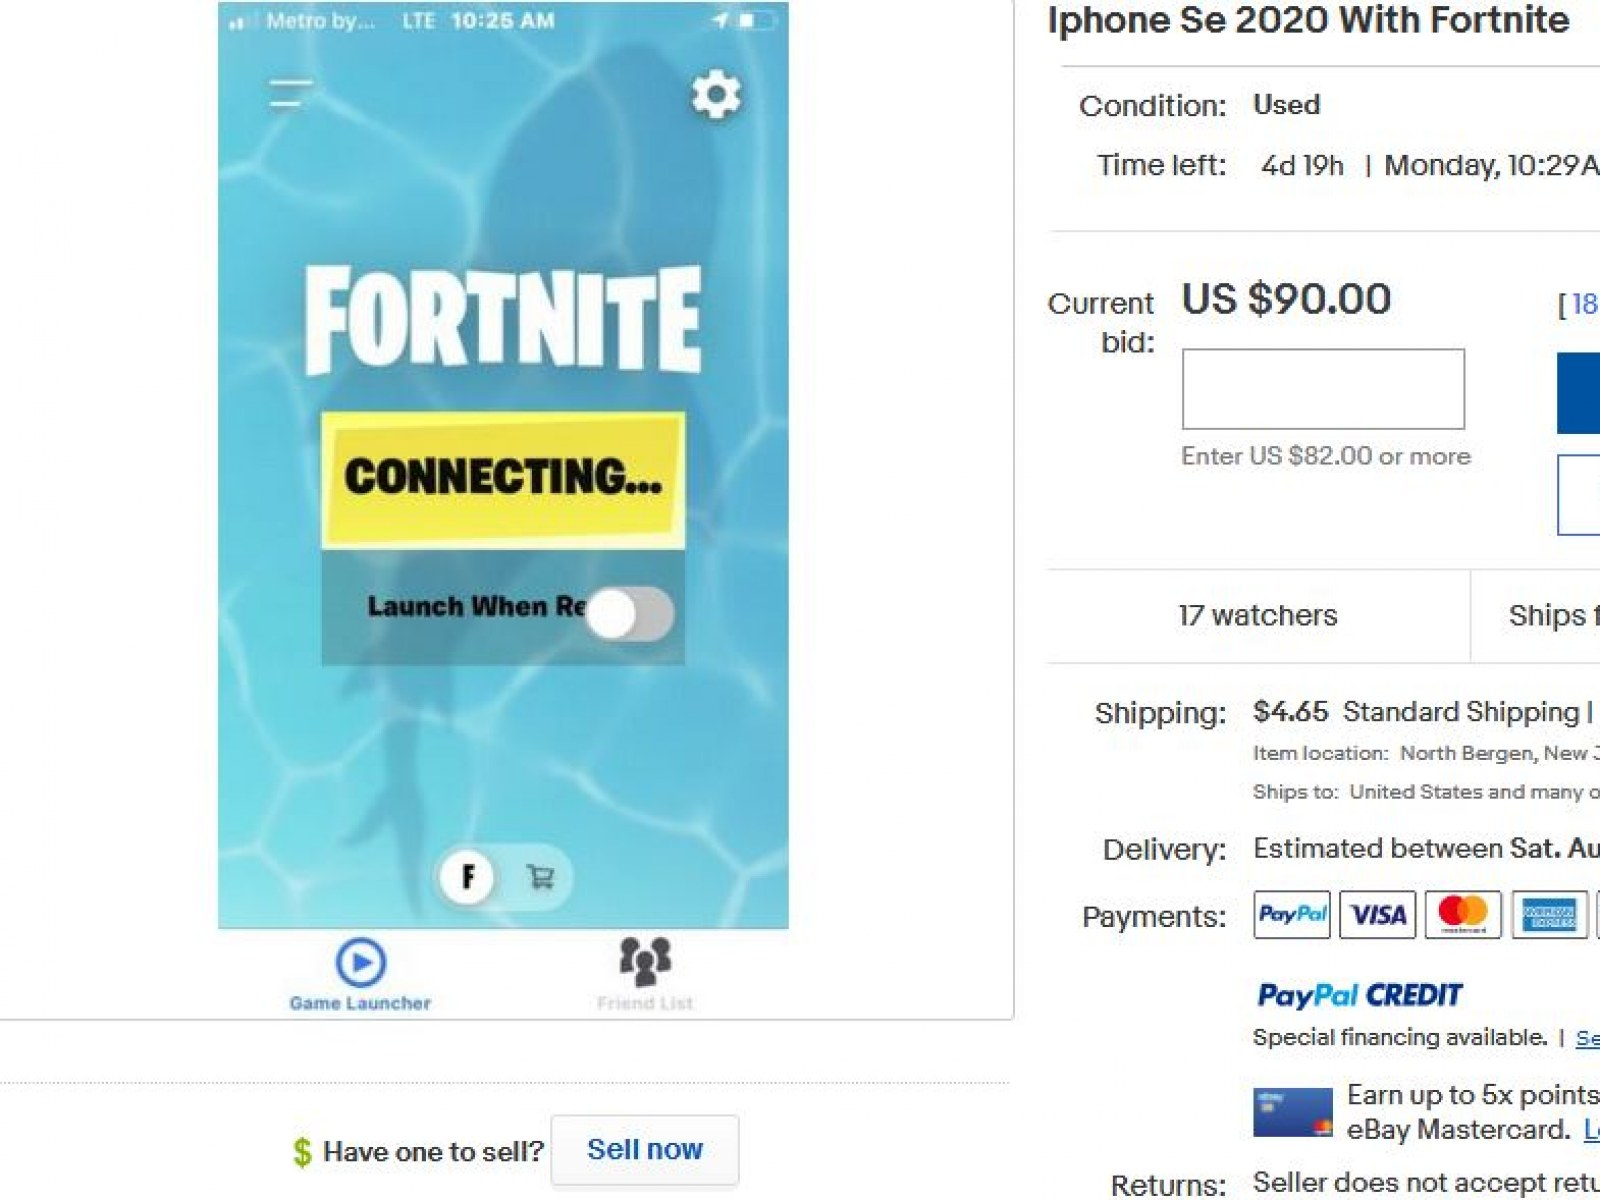 Iphones With Fortnite Installed List On Ebay For Big Money After Apple Feud